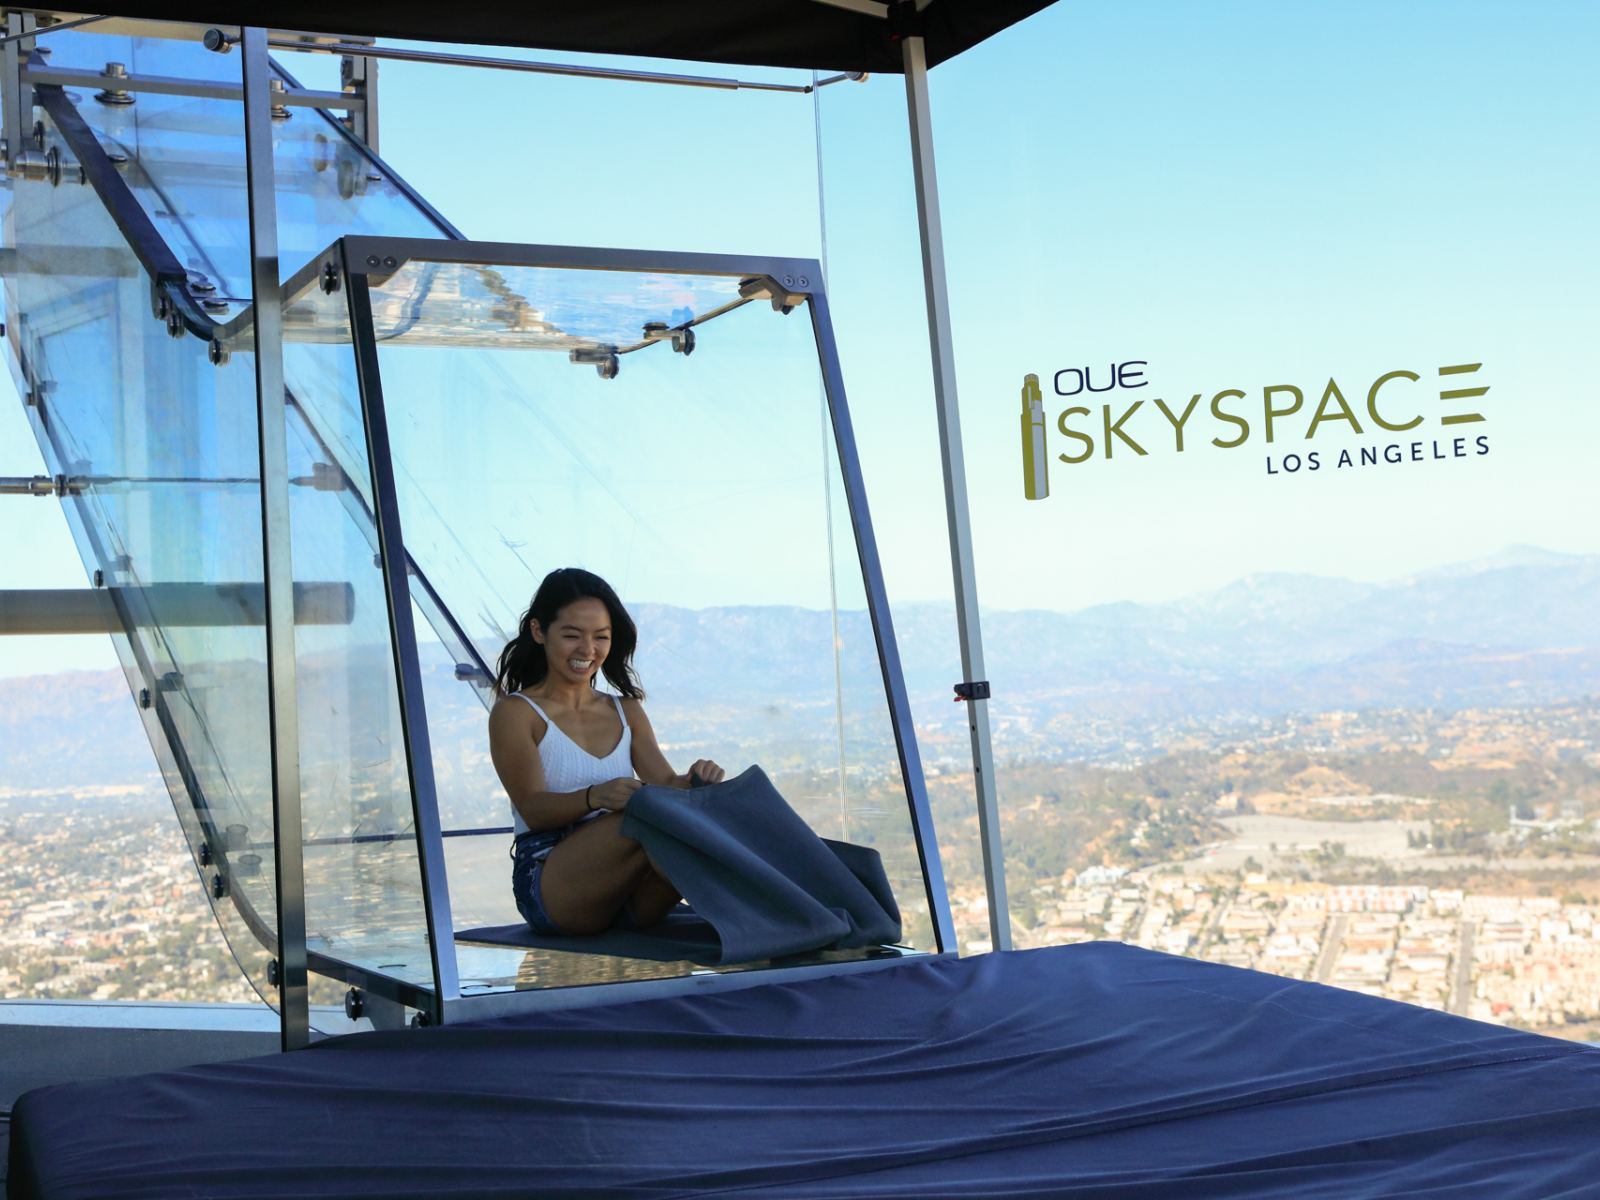 Experience The Skyslide At Oue Skyspace Los Angeles Discover Los